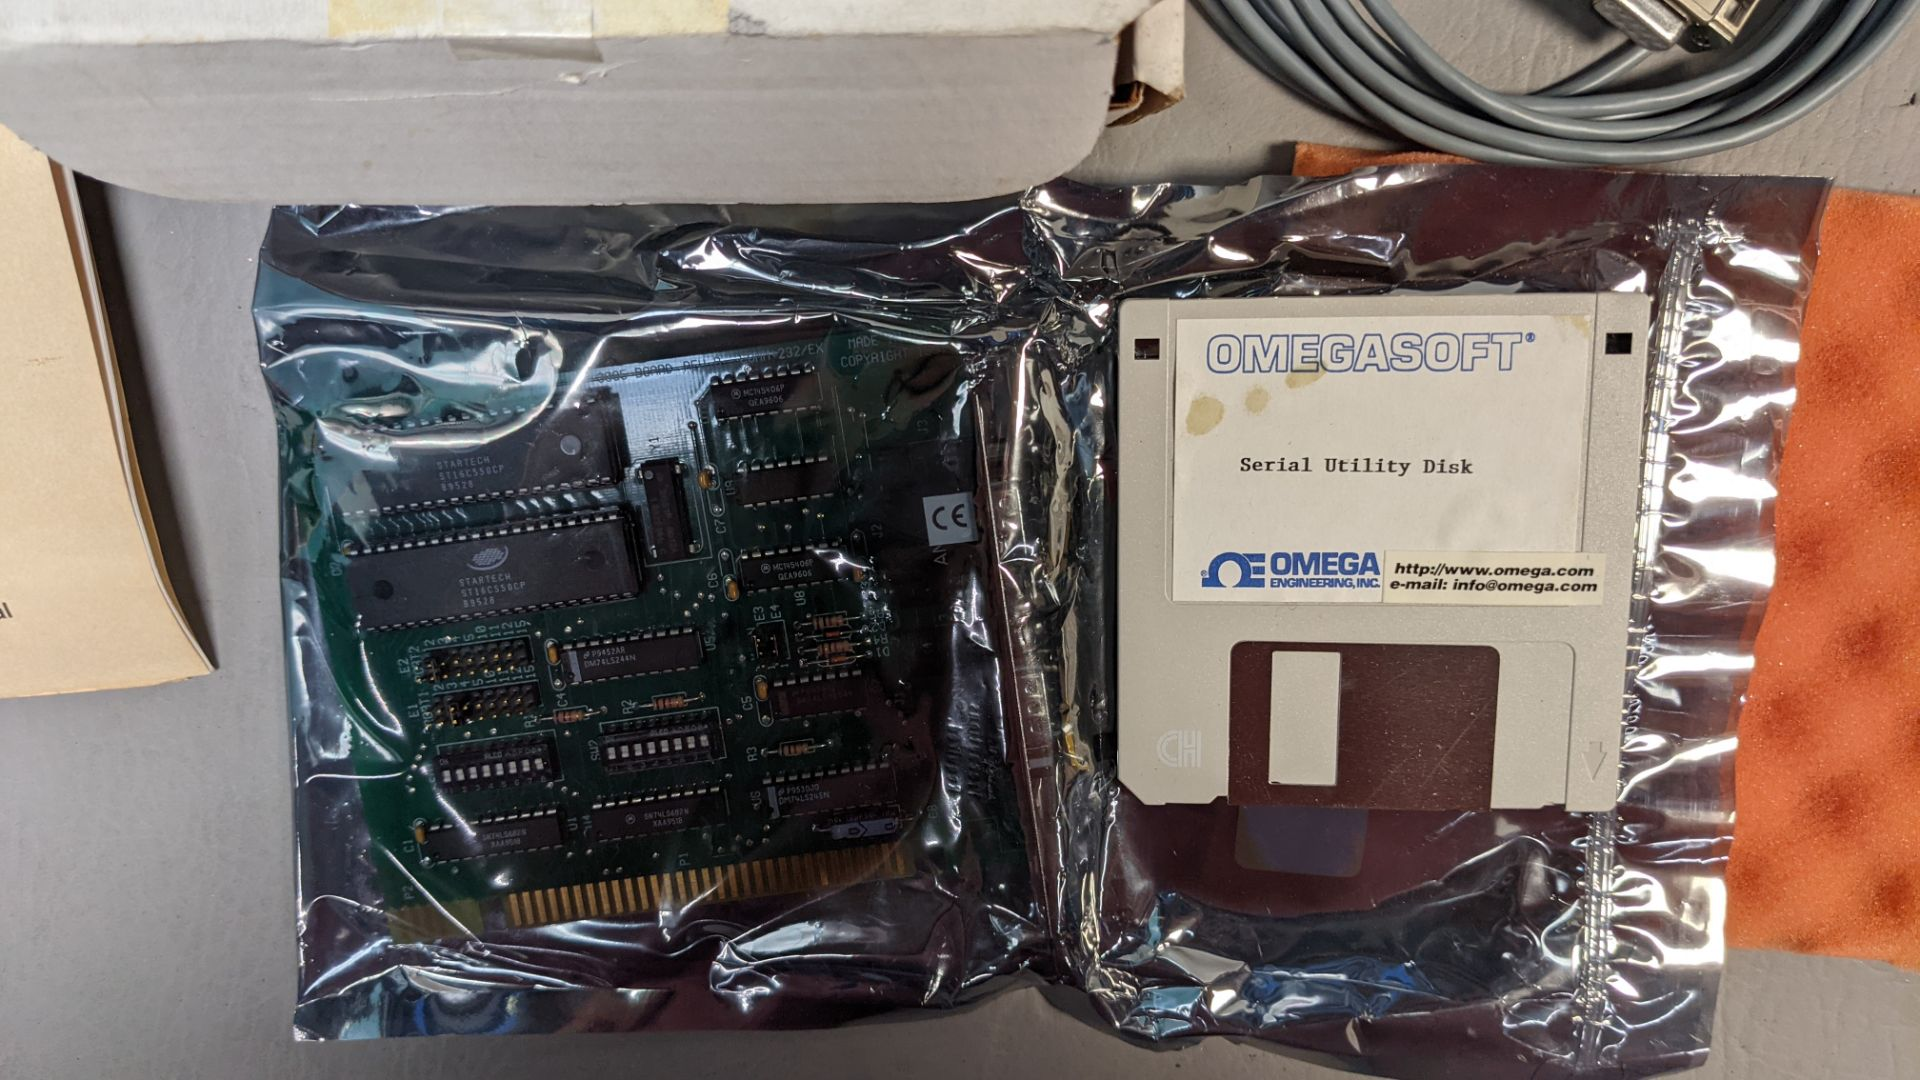 OMEGA DUAL PORT RS-232 INTERFACE CARD - Image 2 of 4